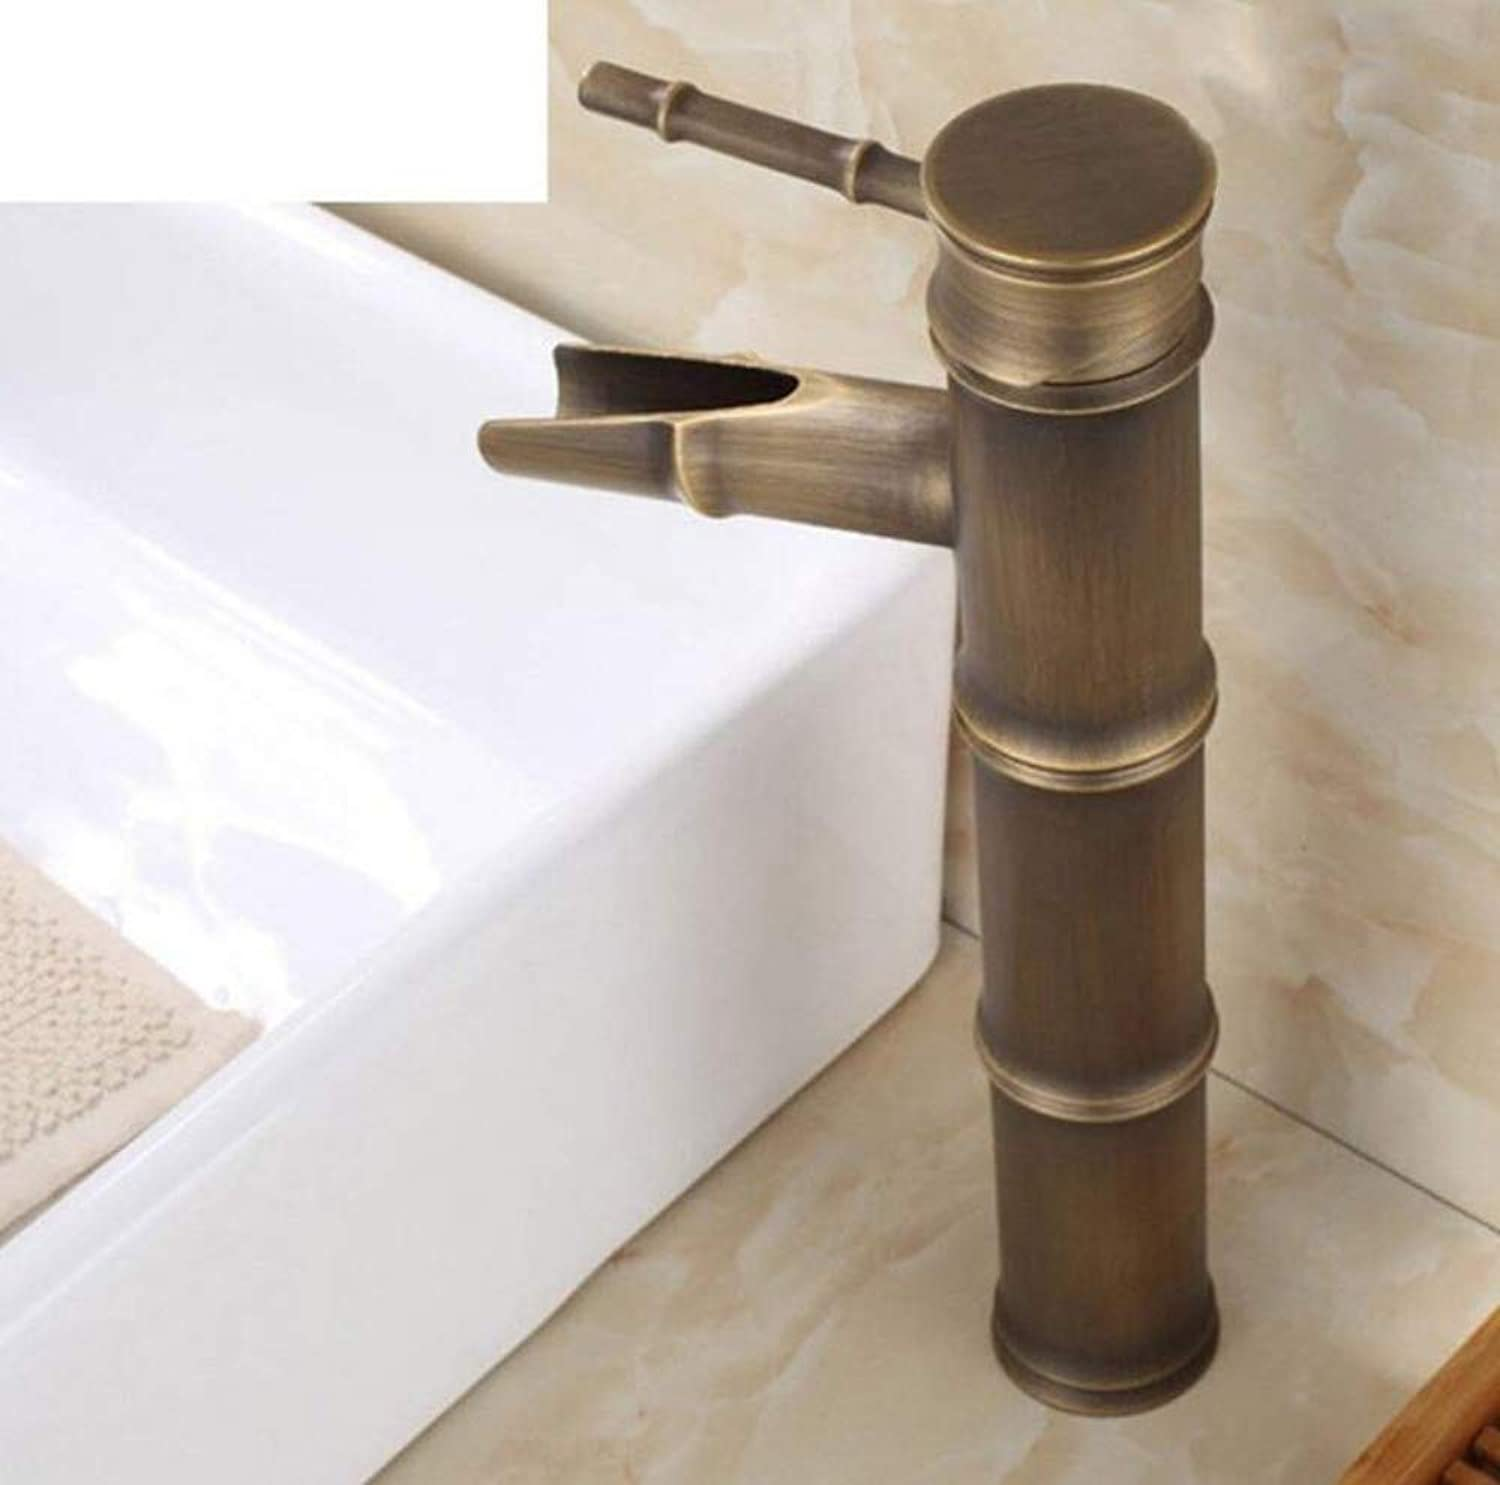 Retro Faucet Mixer Counter Basin Faucet All-Copper Hot and Cold Basin Mixer Antique gold-Plated Hole Faucet